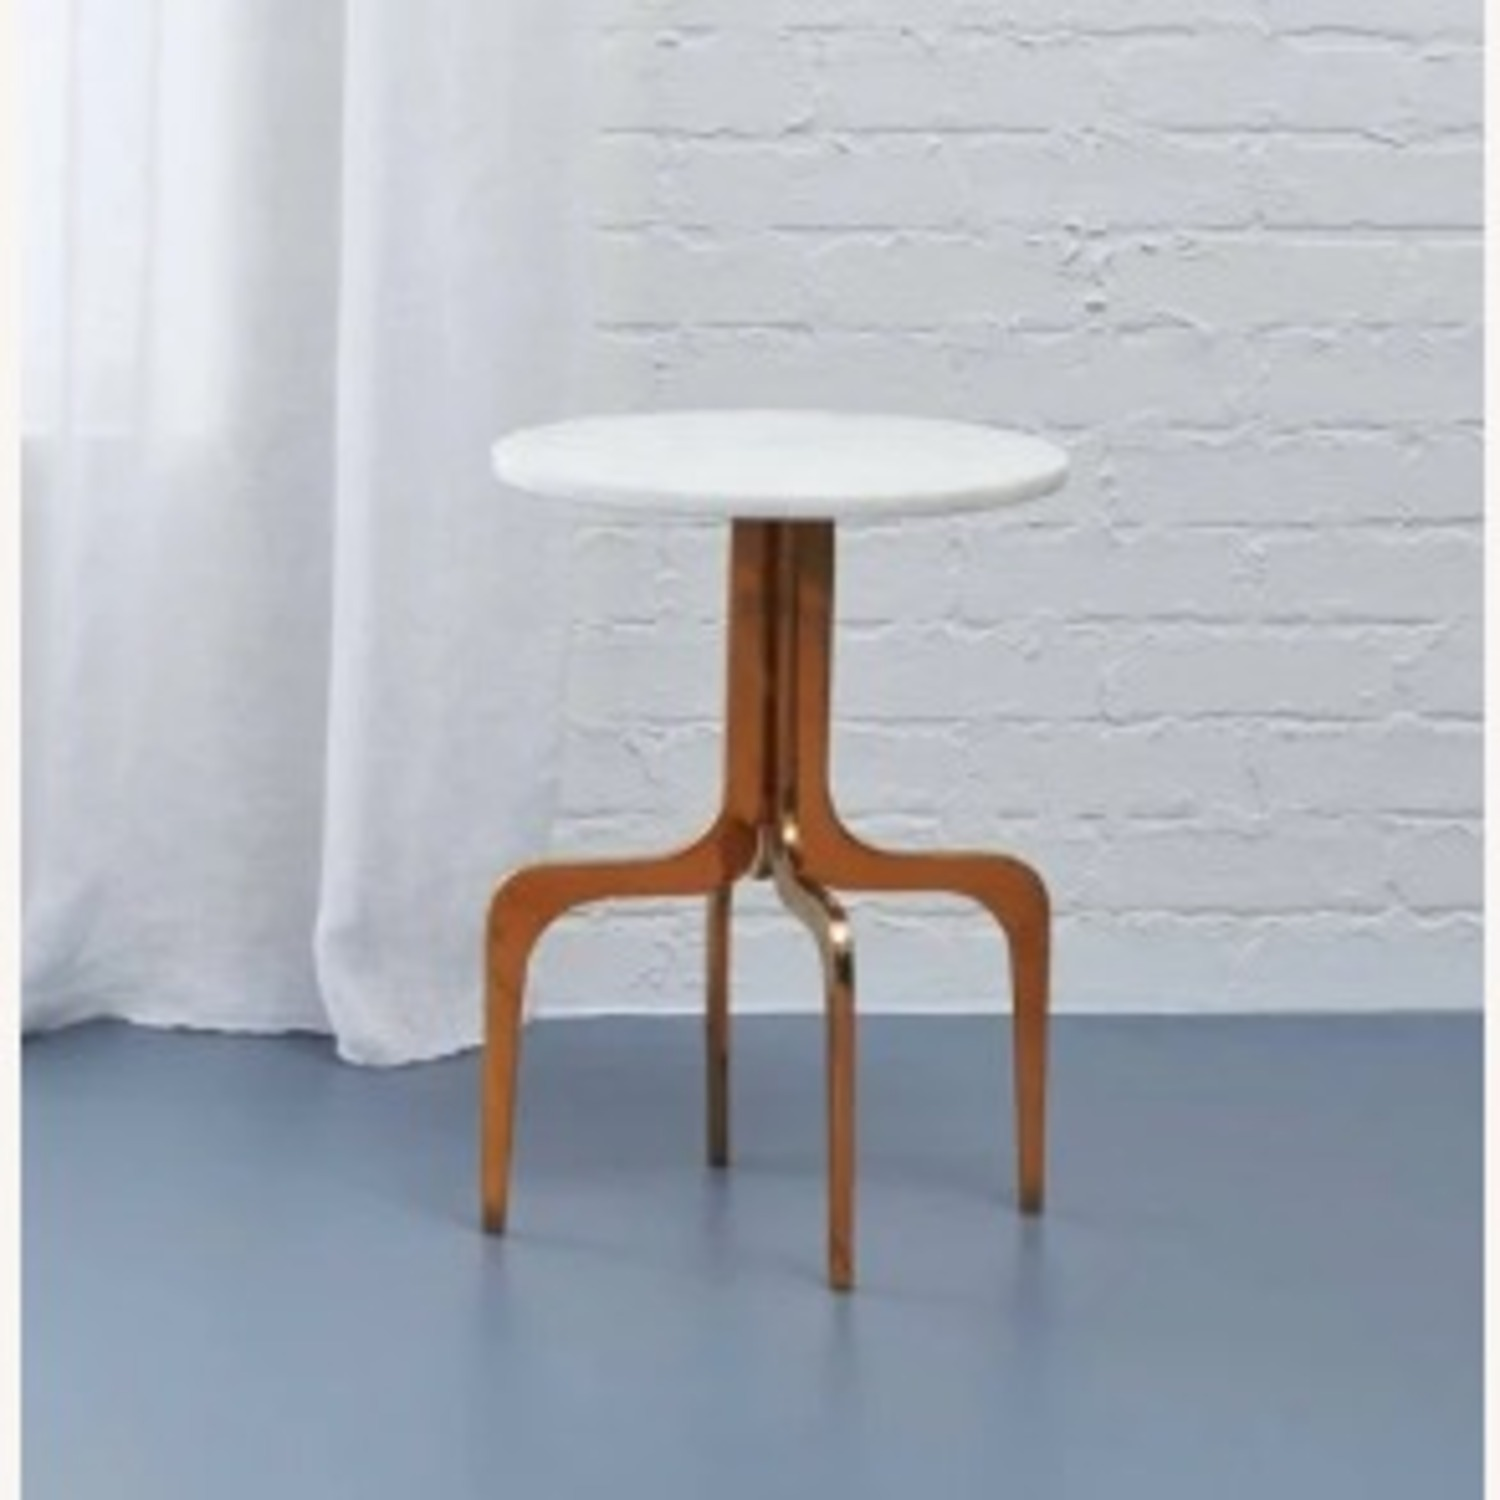 CB2 Dorset Marble side table - image-1